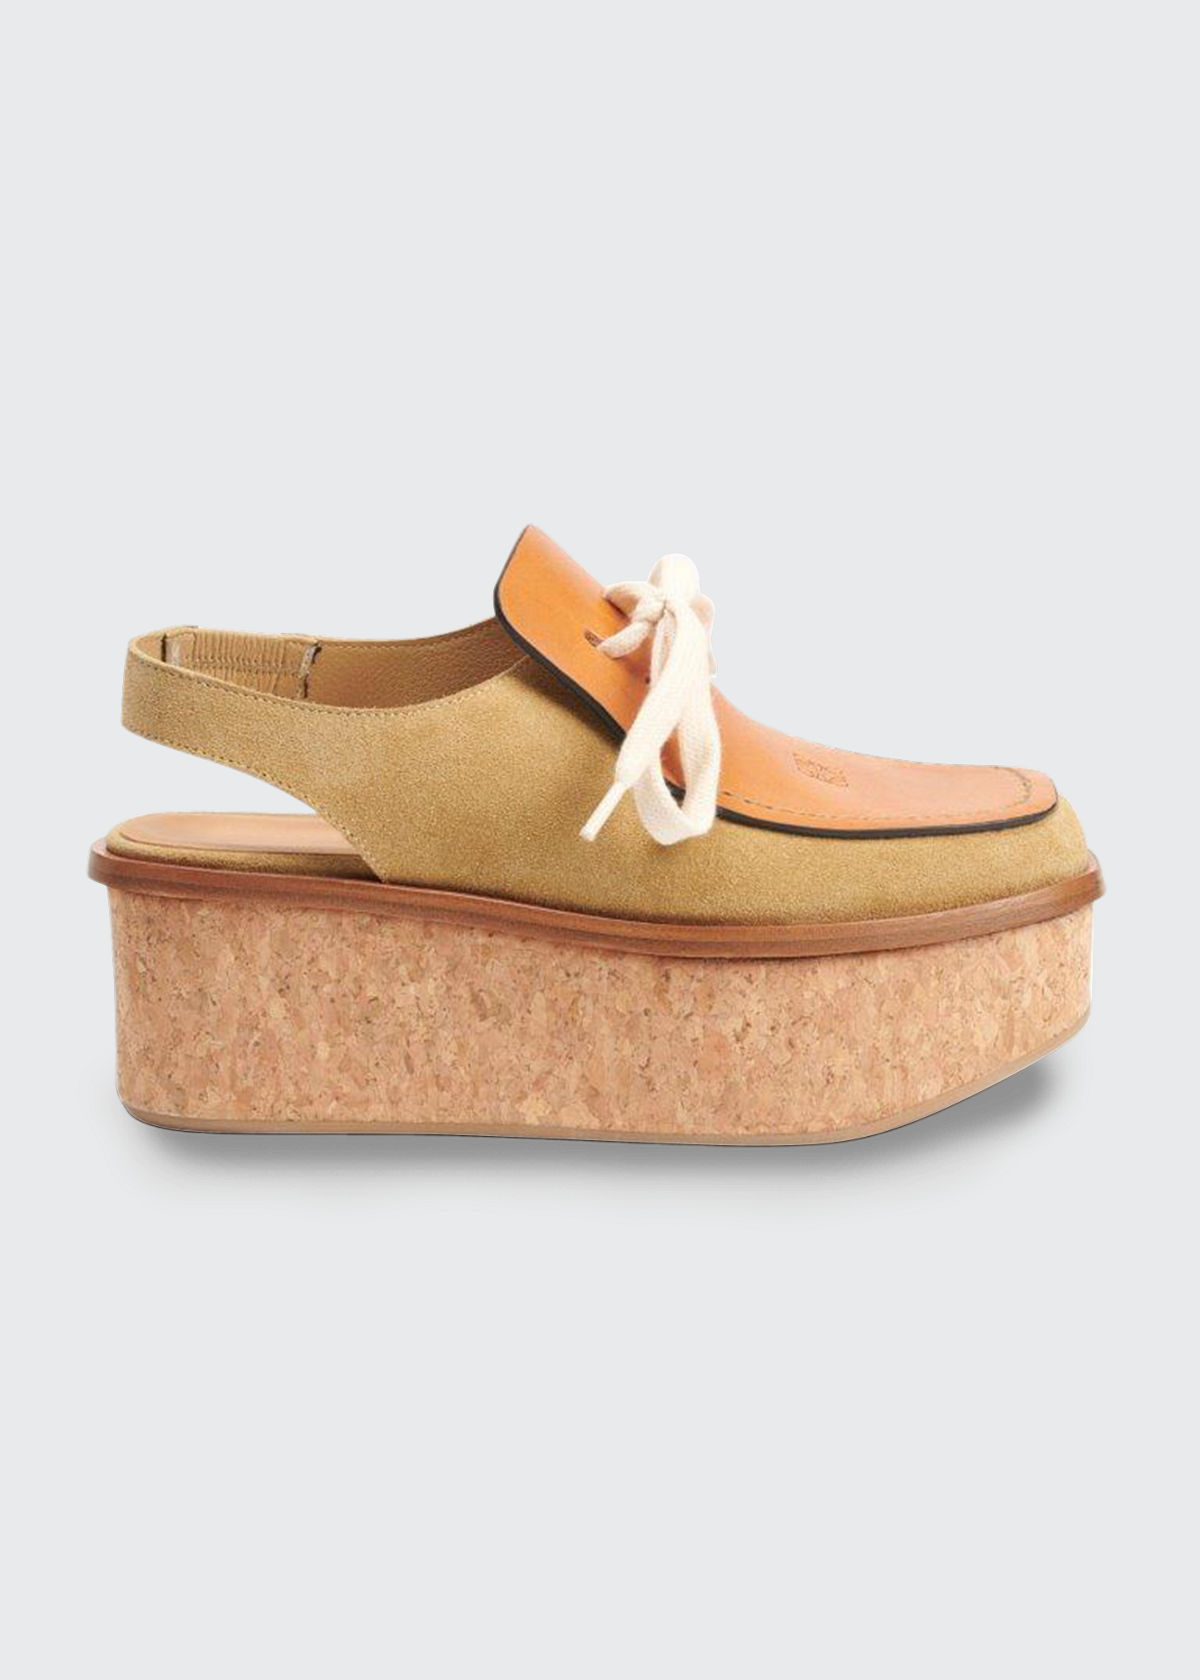 Loewe MIXED LEATHER CORK WEDGE SLINGBACK LOAFERS